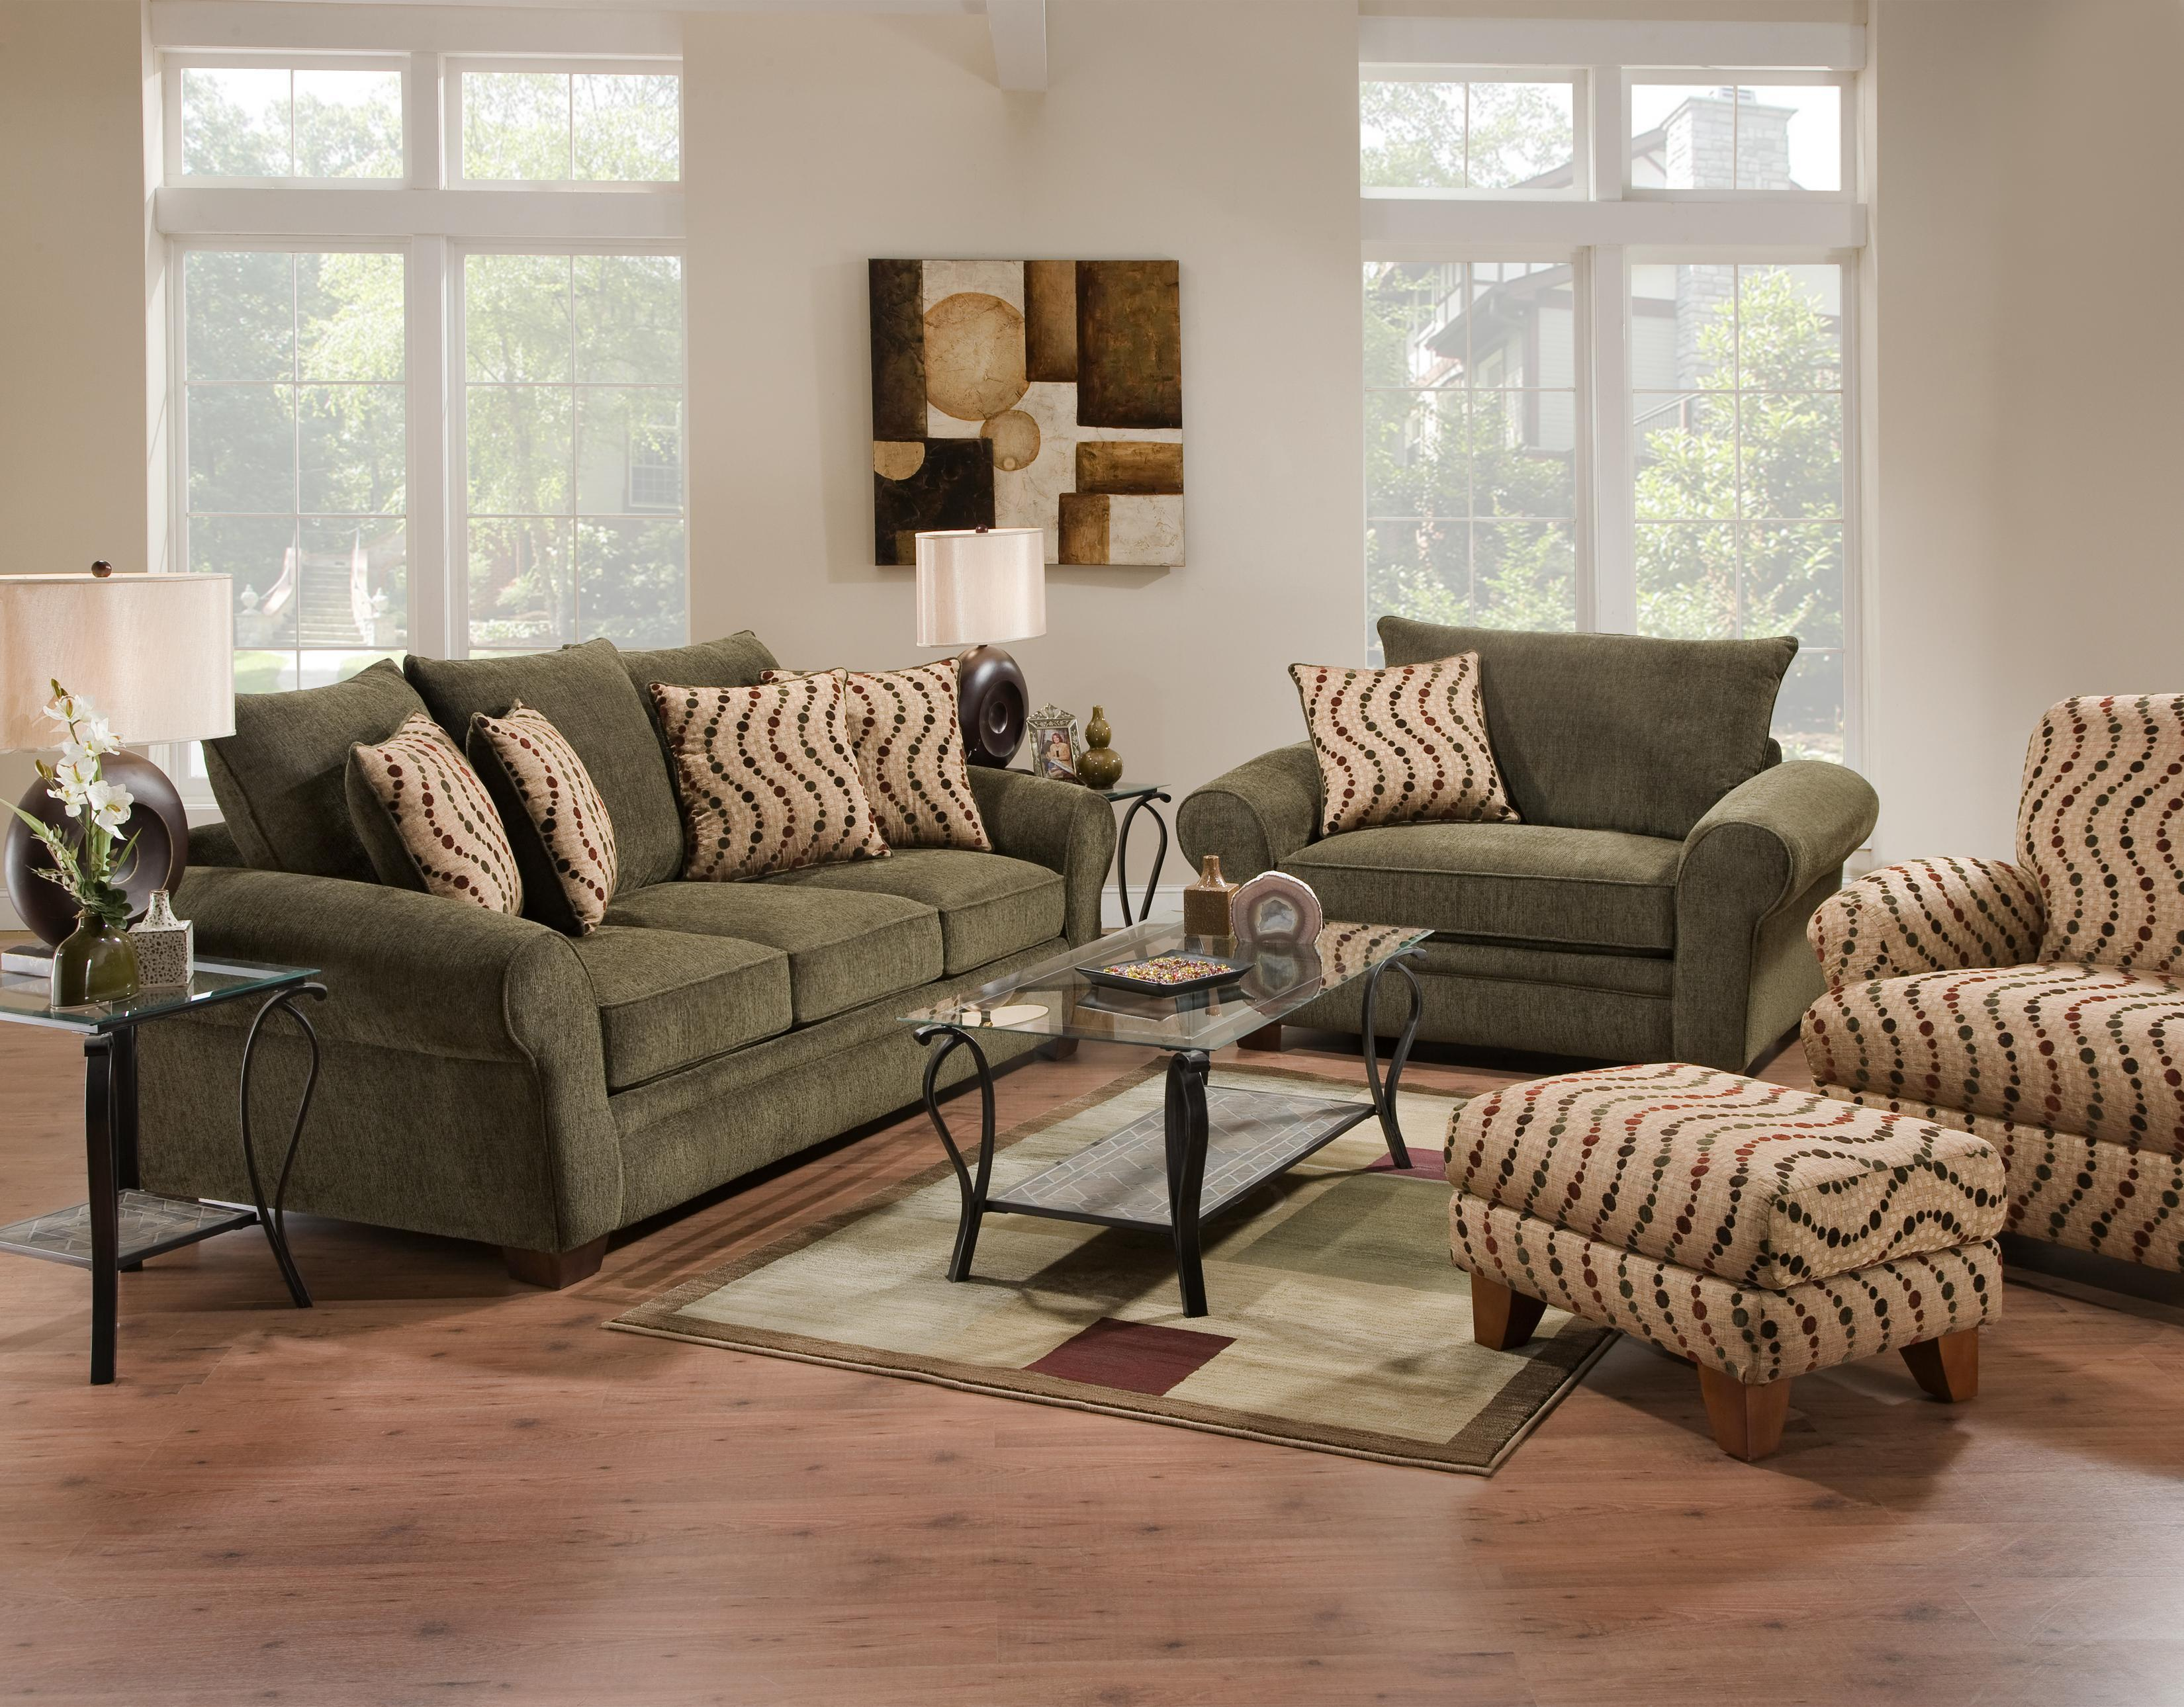 Corinthian 5400 Attractive Accent Chair Ottoman With Smooth Simplistic Look In Casual Contemporary Style Furniturewebsite